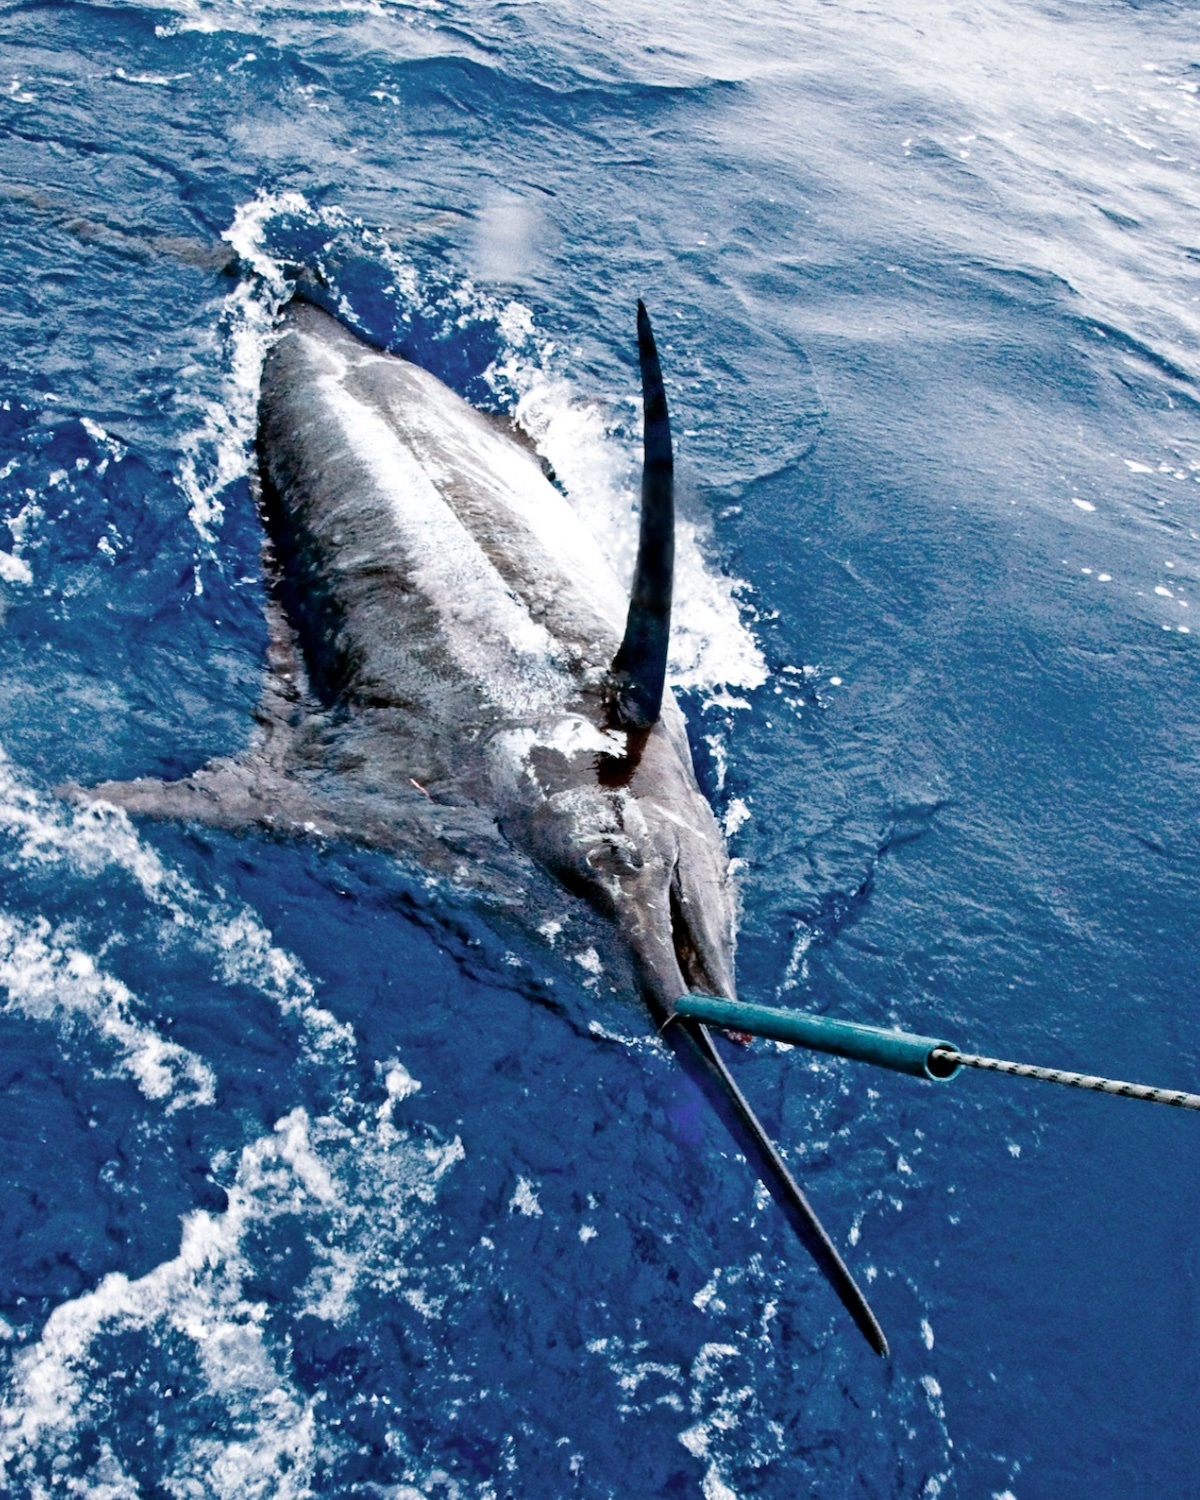 Marlin ©Phil Licence CC BY-ND 2.0